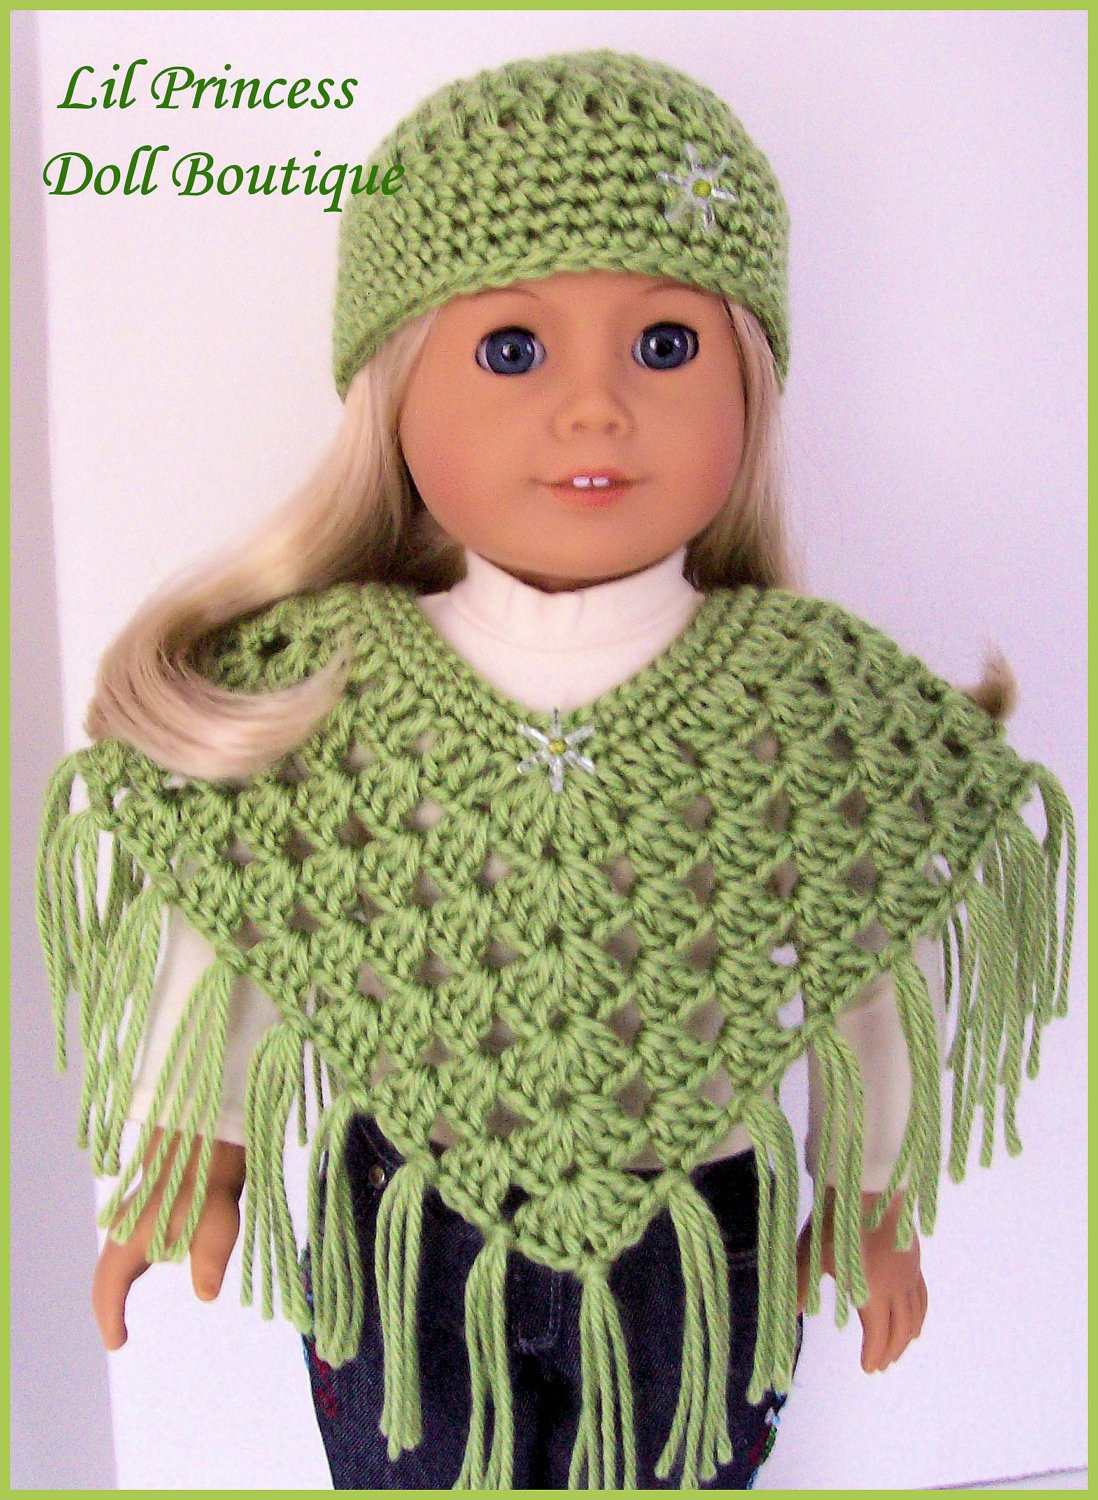 Crochet Doll Clothes Best Of Free Crochet American Doll Clothes Crochet — Learn How Of Fresh 48 Images Crochet Doll Clothes